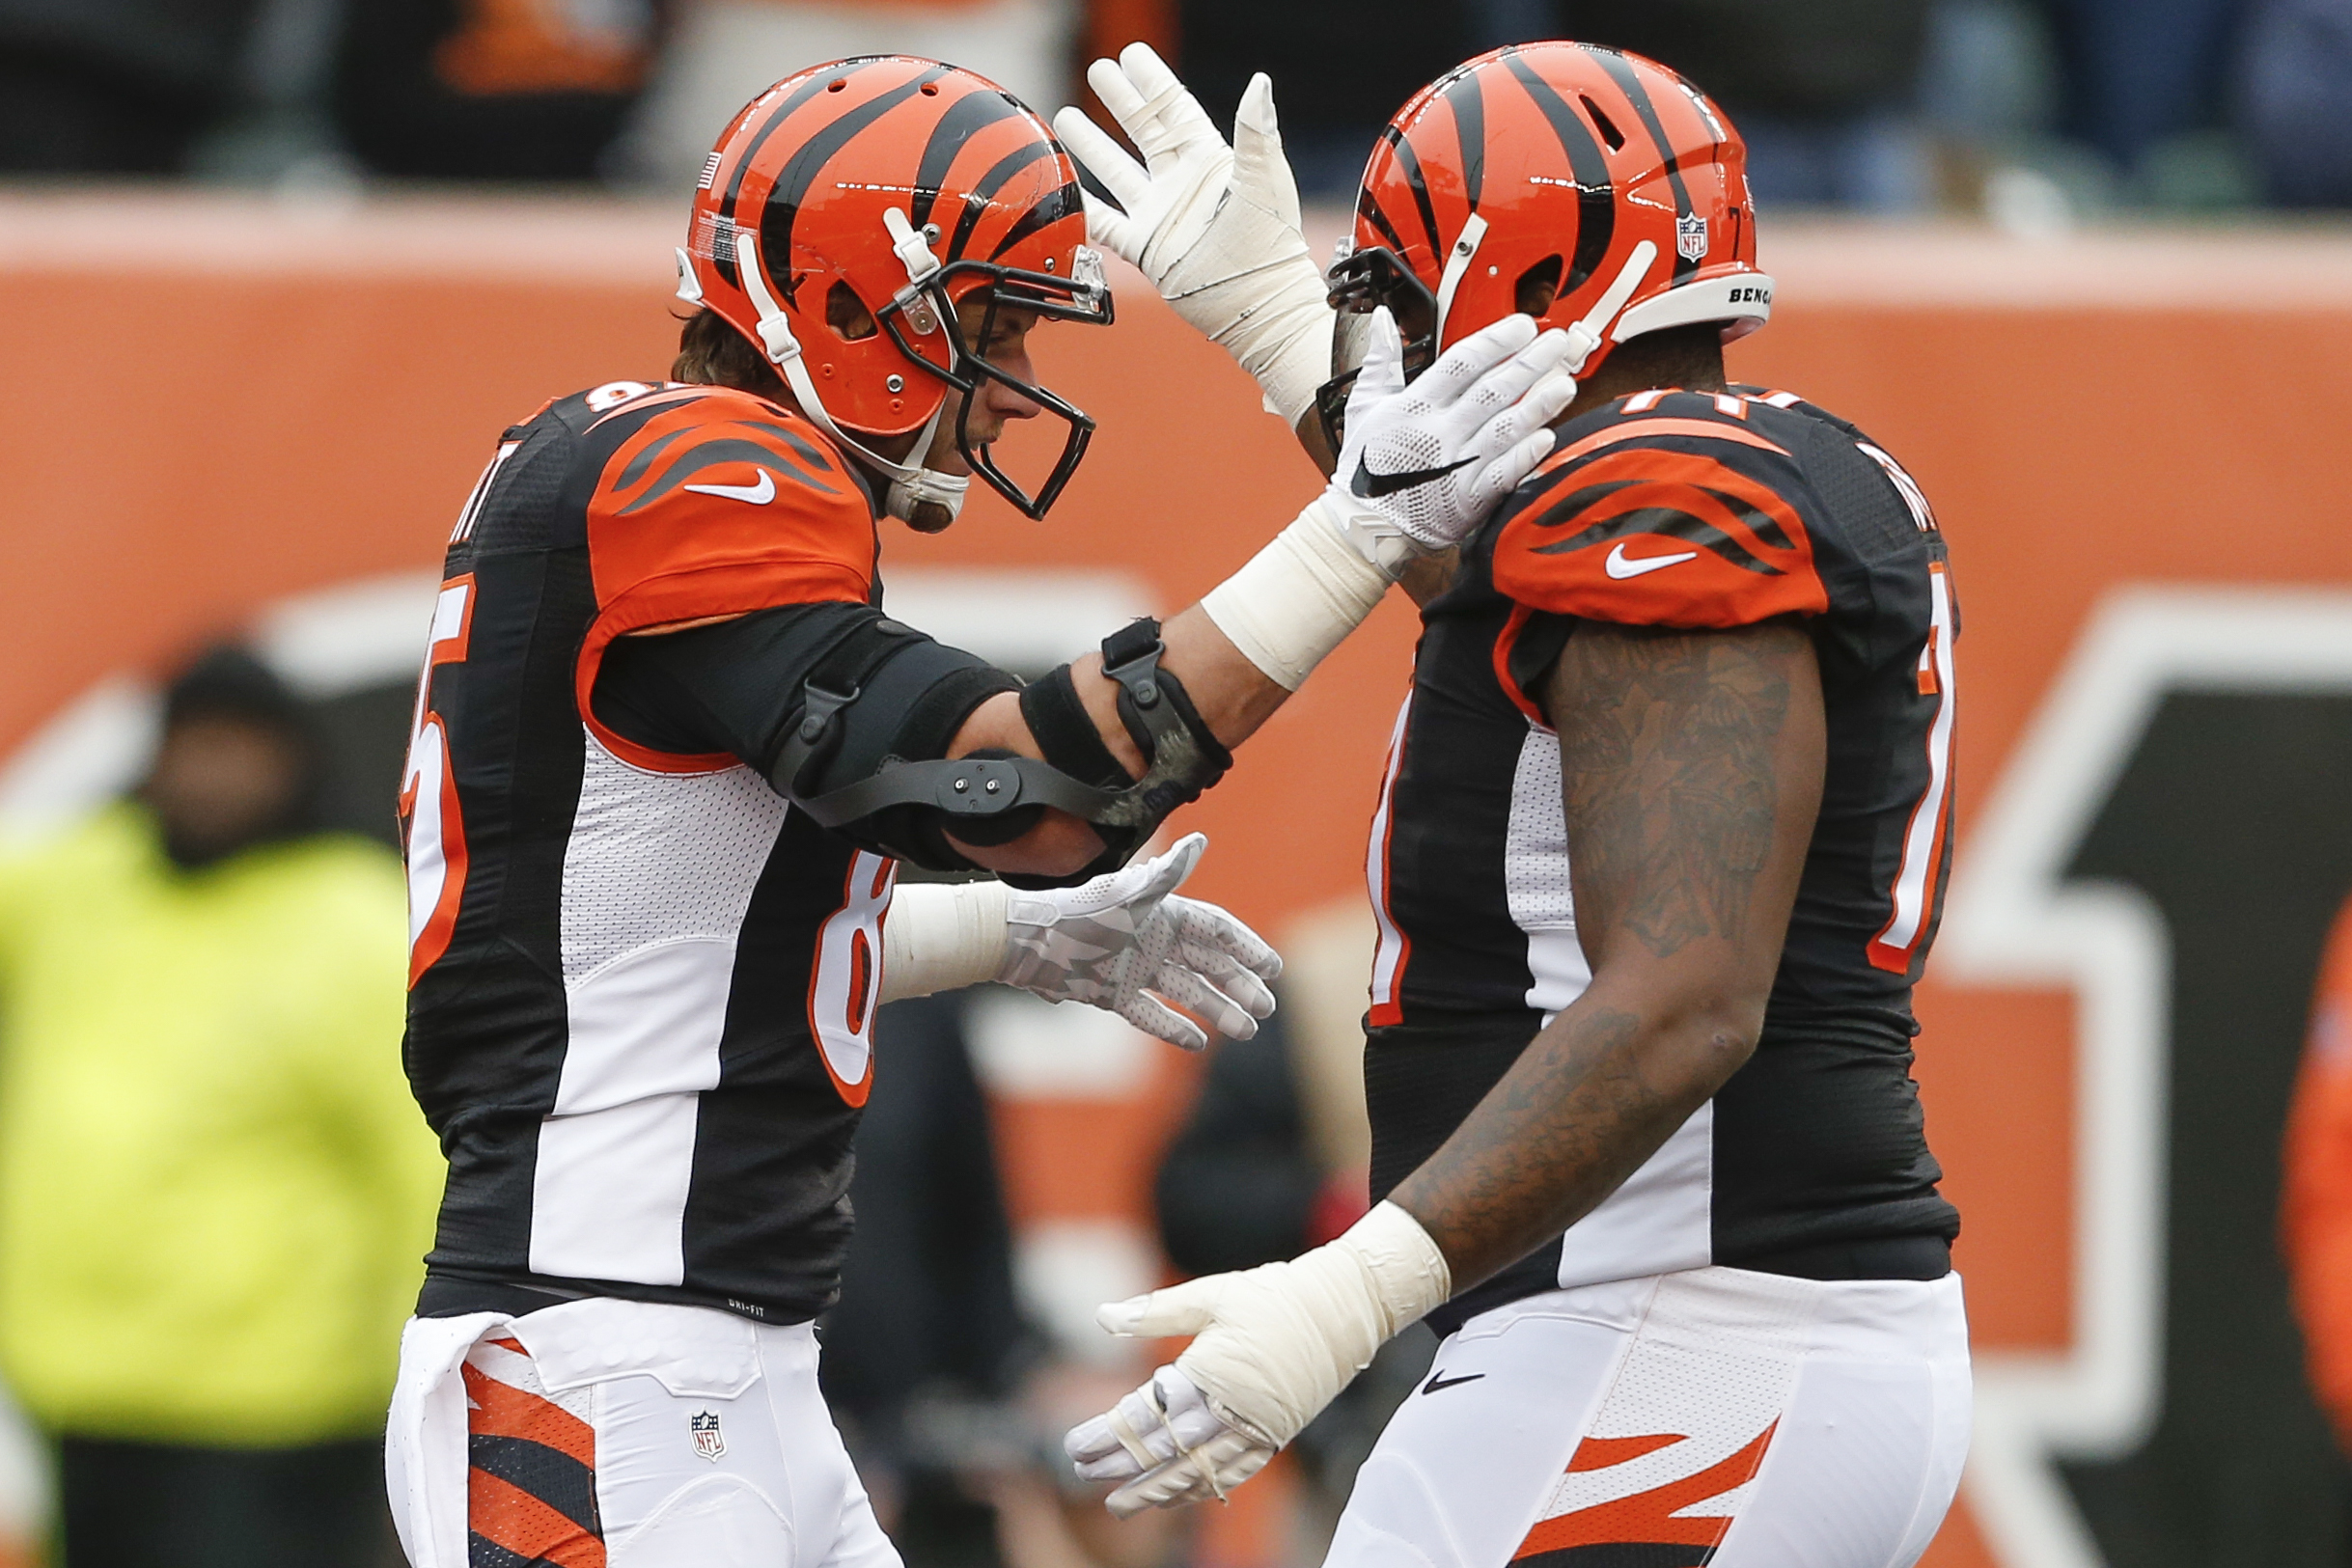 Cincinnati Bengals tight end Tyler Eifert, left, celebrates scoring a touchdown with tackle Andre Smith, right, in the first half of an NFL football game against the St. Louis Rams, Sunday, Nov. 29, 2015, in Cincinnati. (AP Photo/Gary Landers)